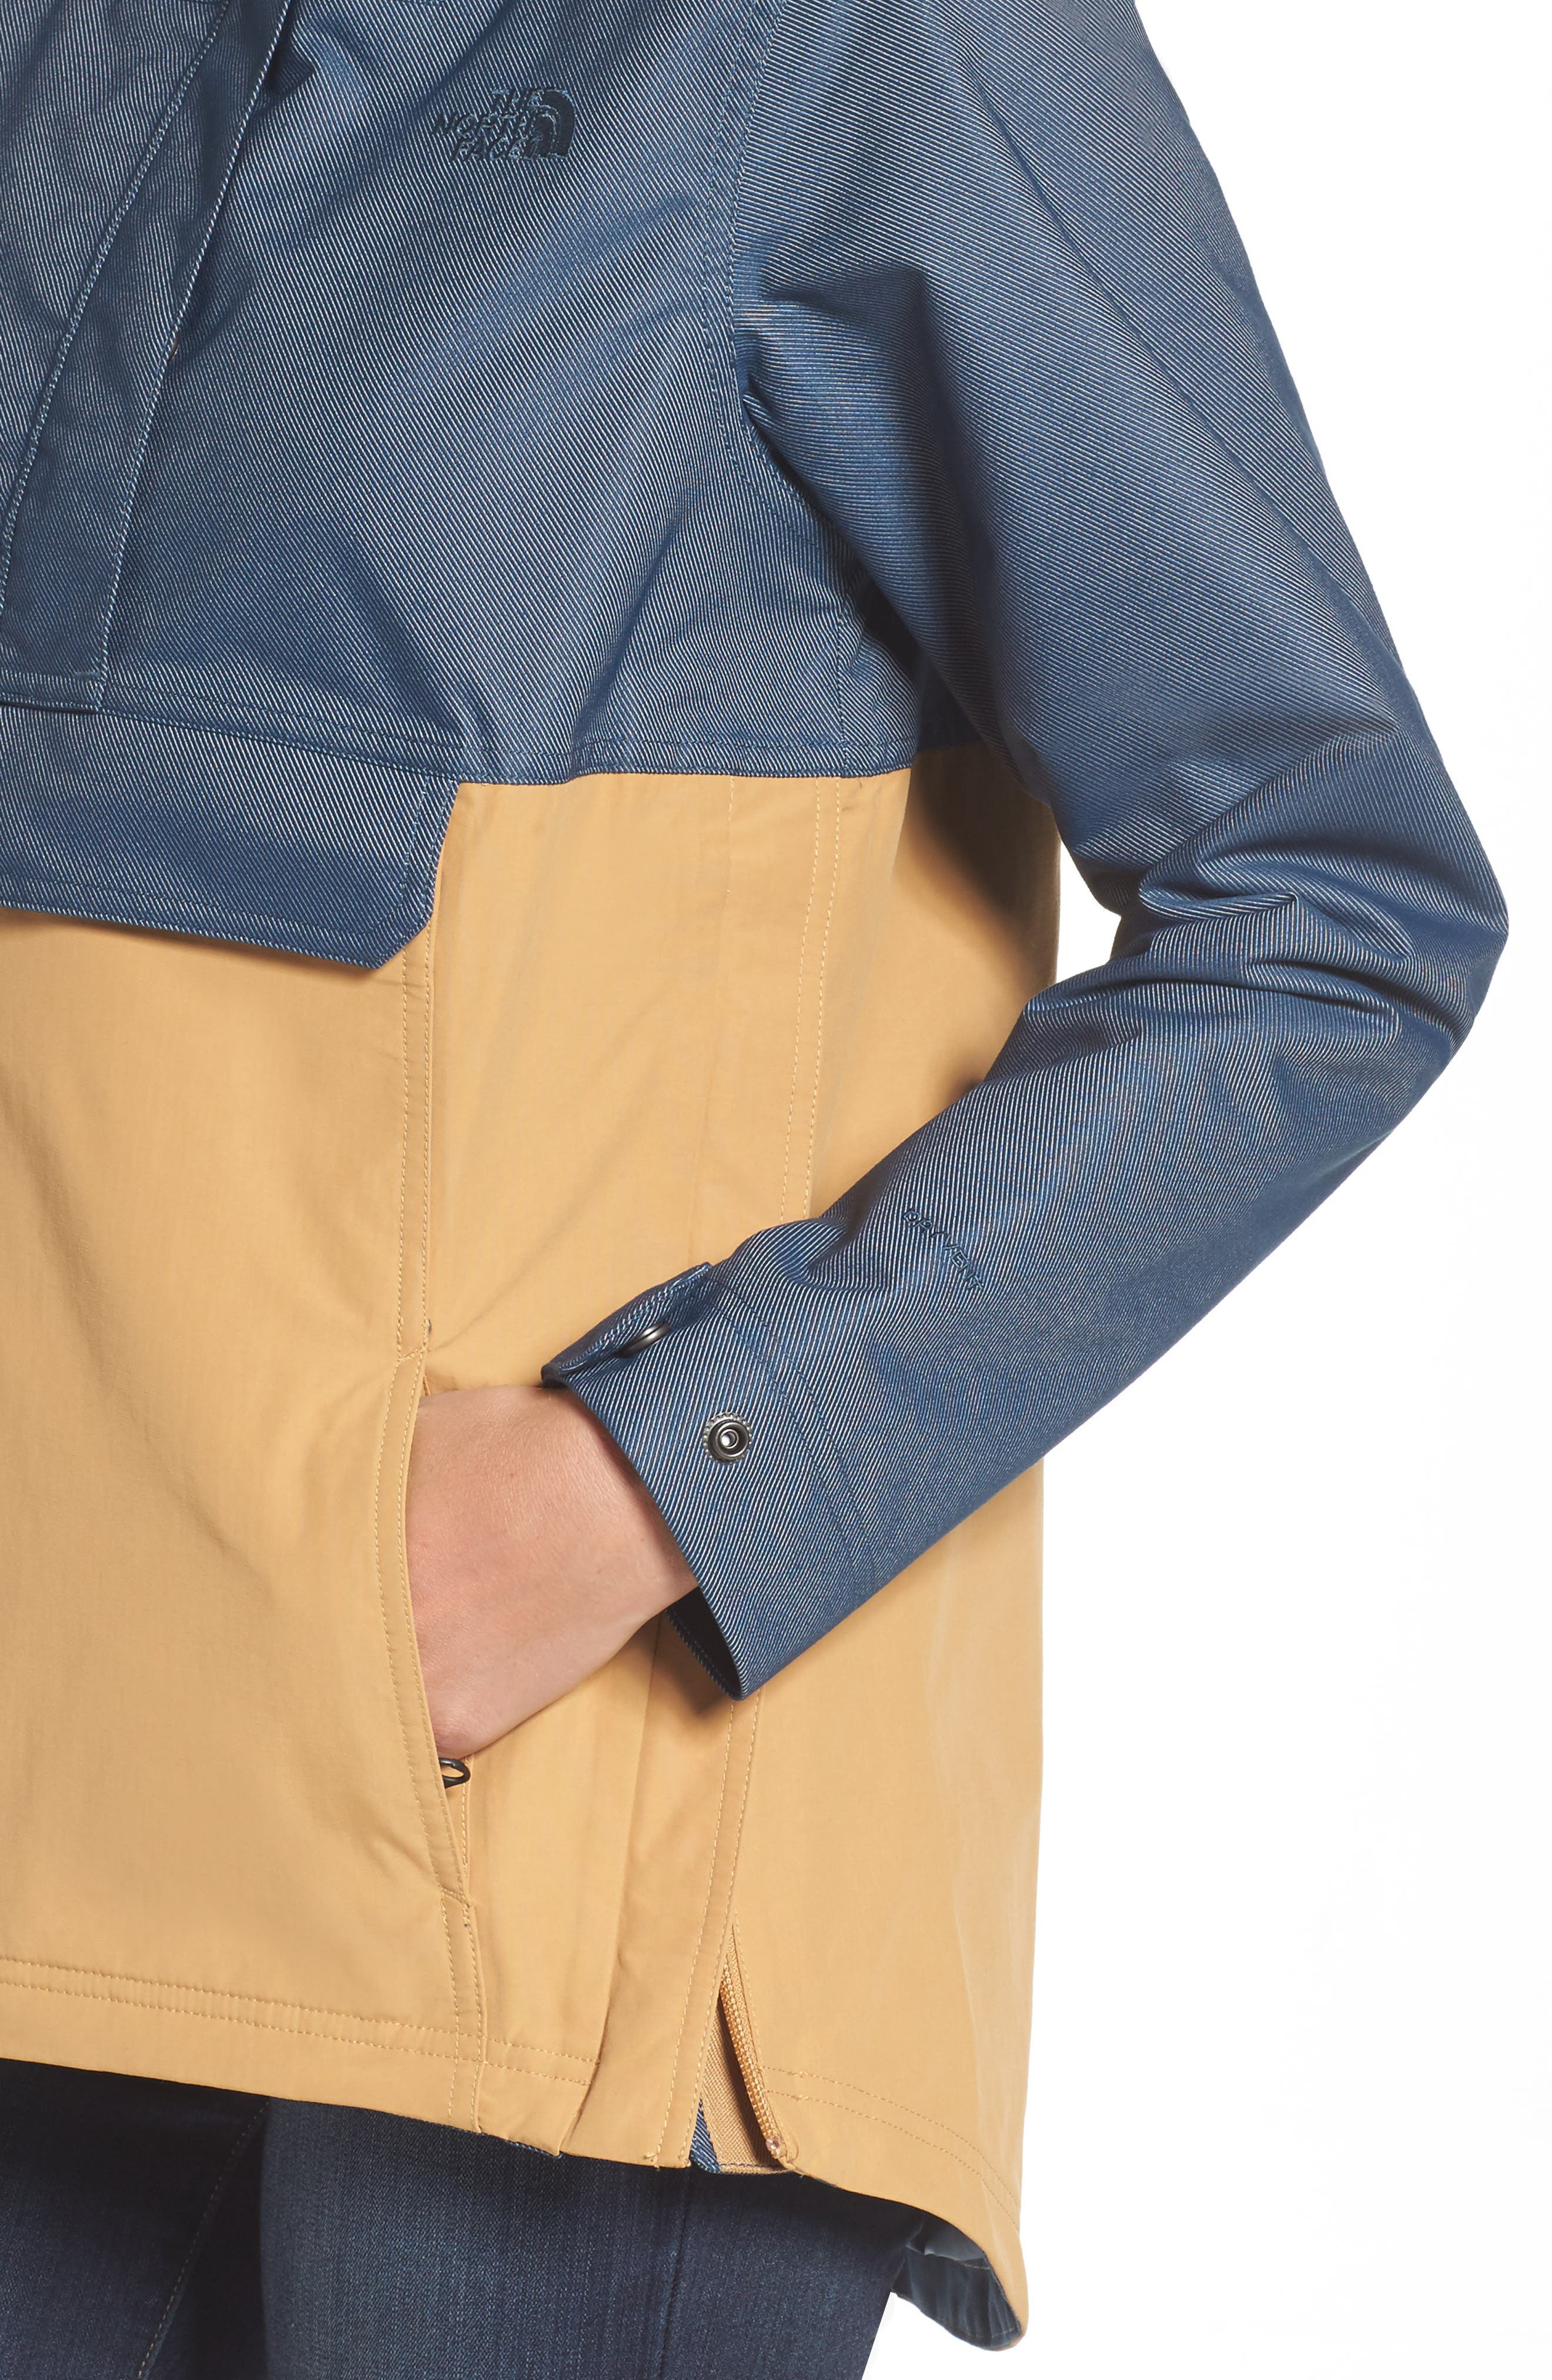 Cadet Anorak Rain Jacket,                             Alternate thumbnail 4, color,                             Biscuit Tan Ink Blue